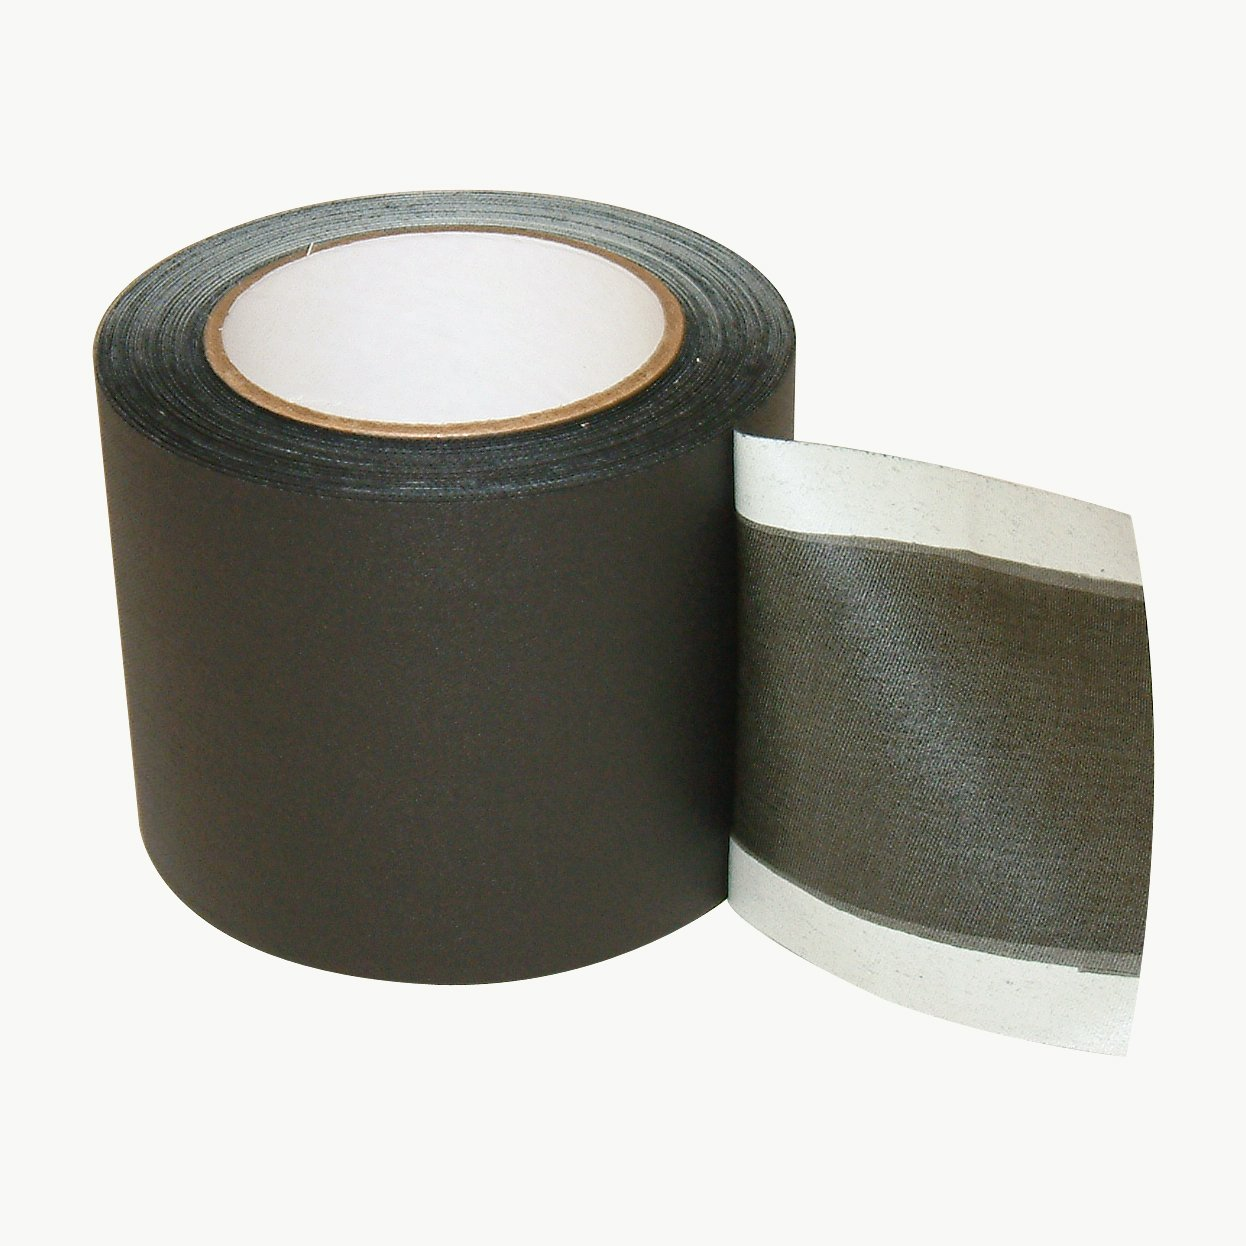 JVCC Wire-Line Cable Cover Tape: 4 in. x 30 ft. (Black) Wire-Line/BLK410